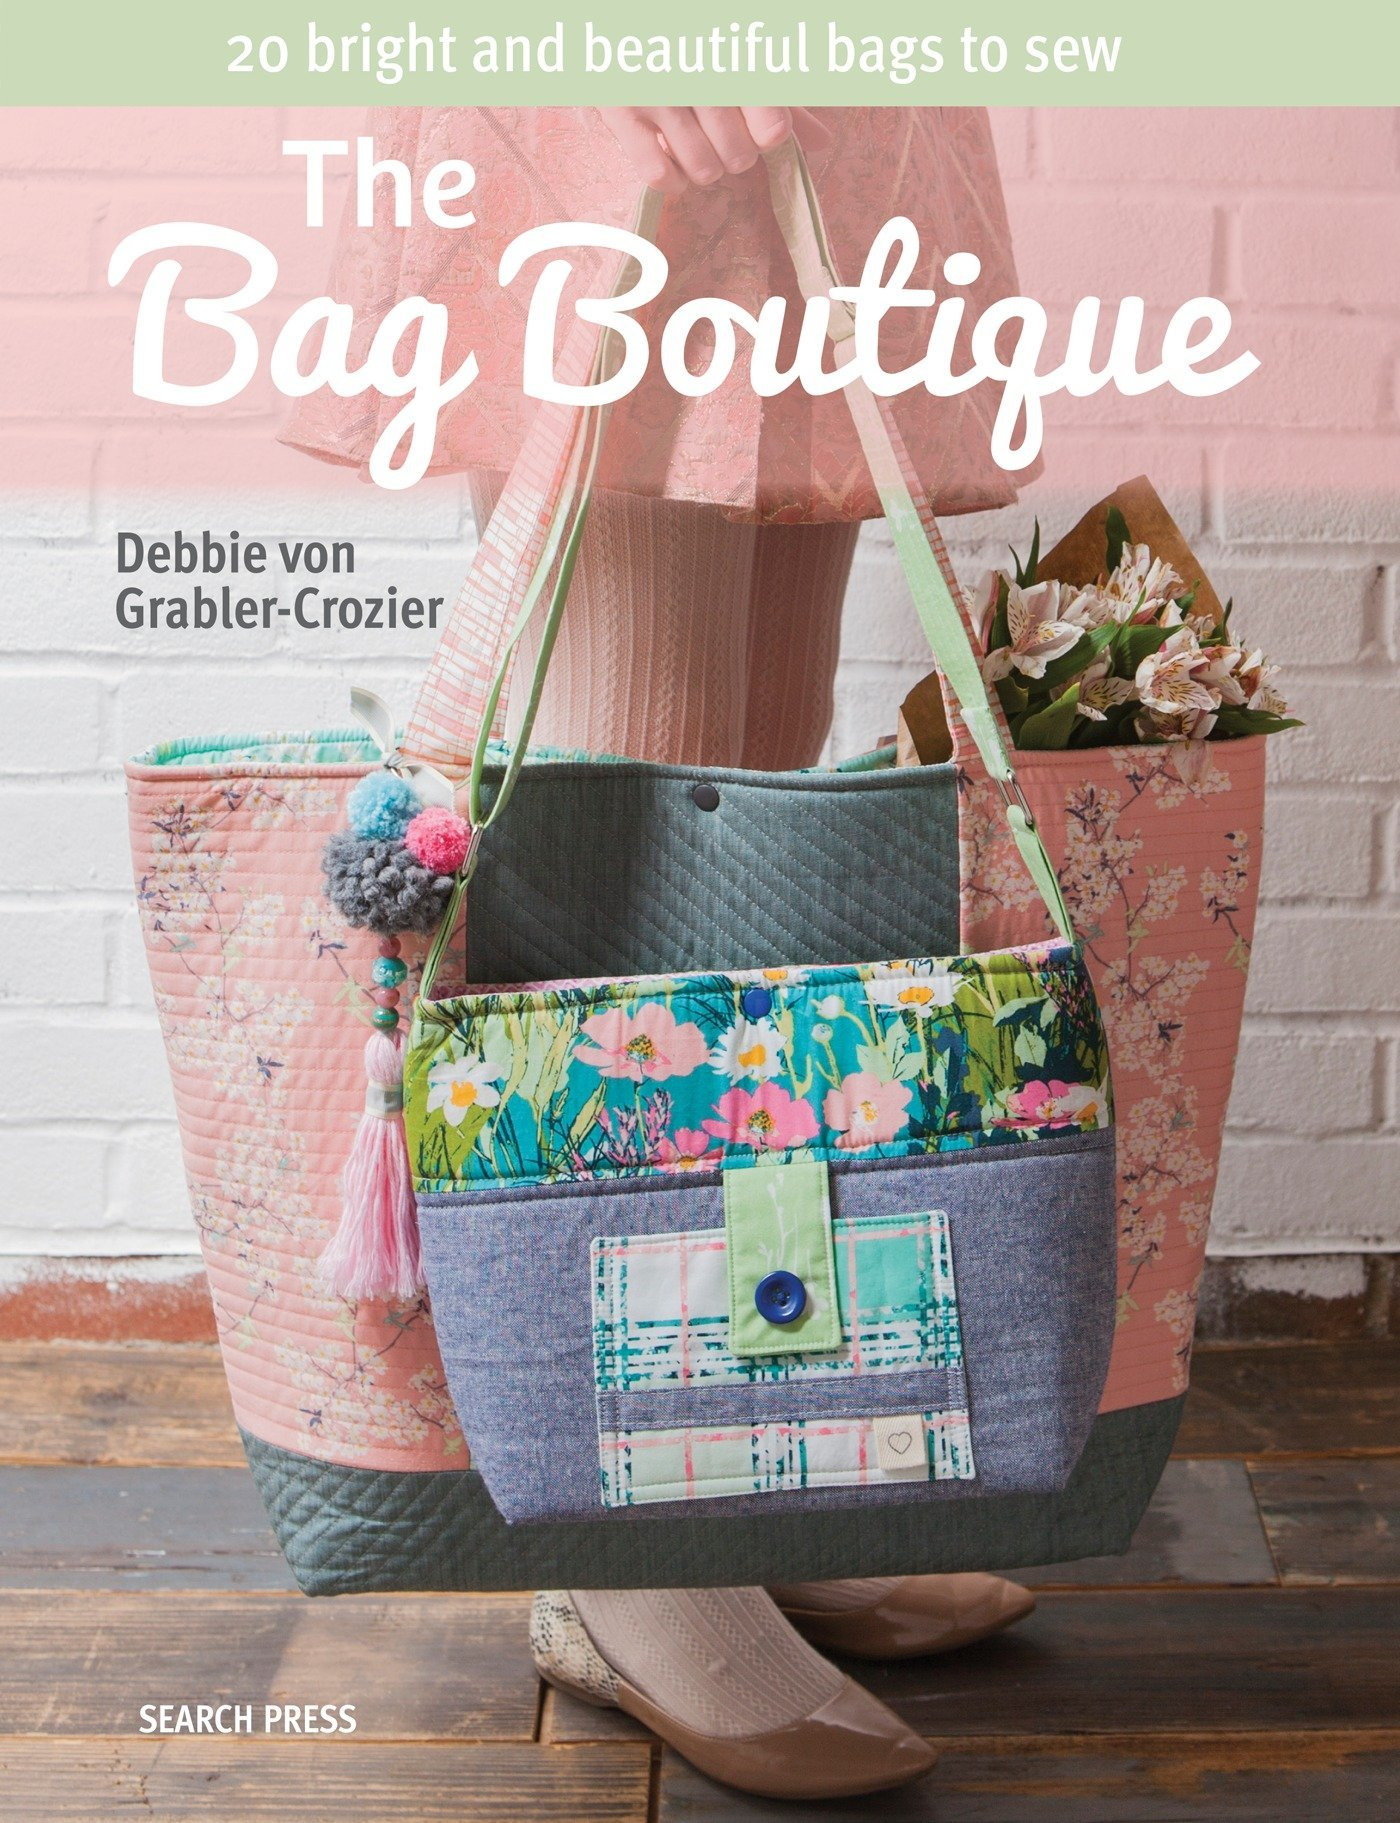 a23685495492 The Bag Boutique: 20 Bright and Beautiful Bags to Sew: Amazon.co.uk ...